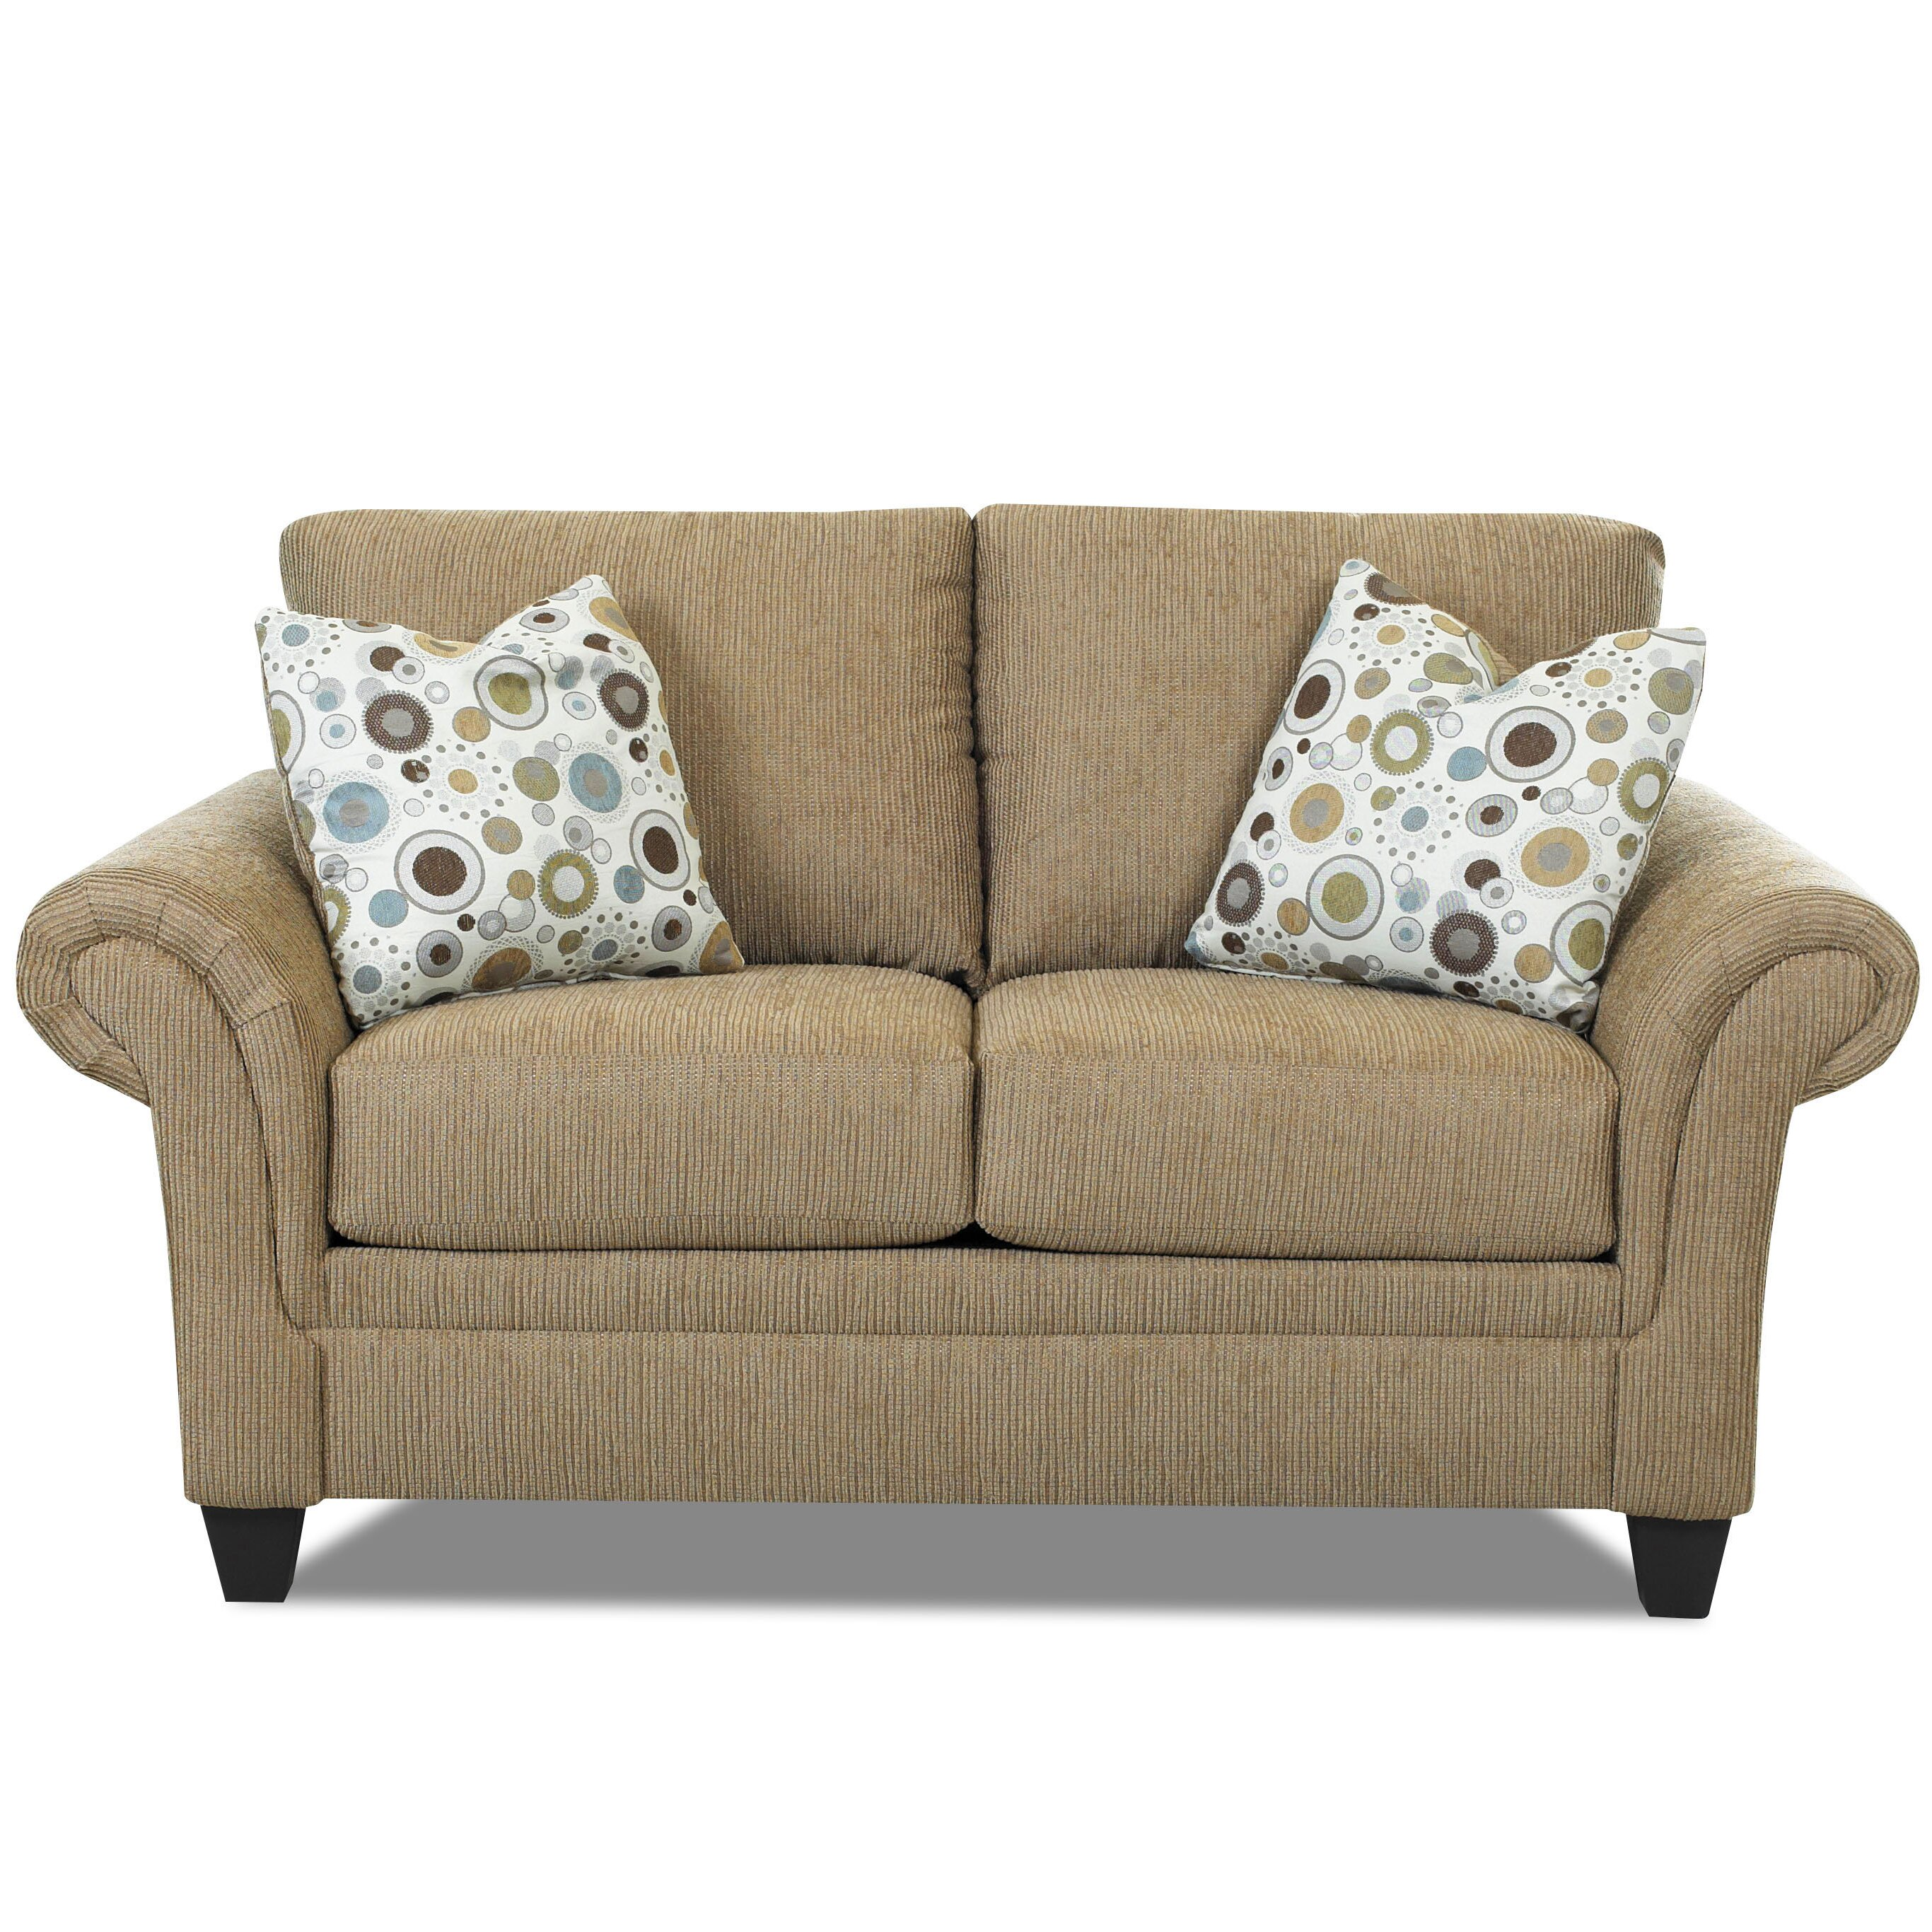 Klaussner Furniture Highland Loveseat Wayfair